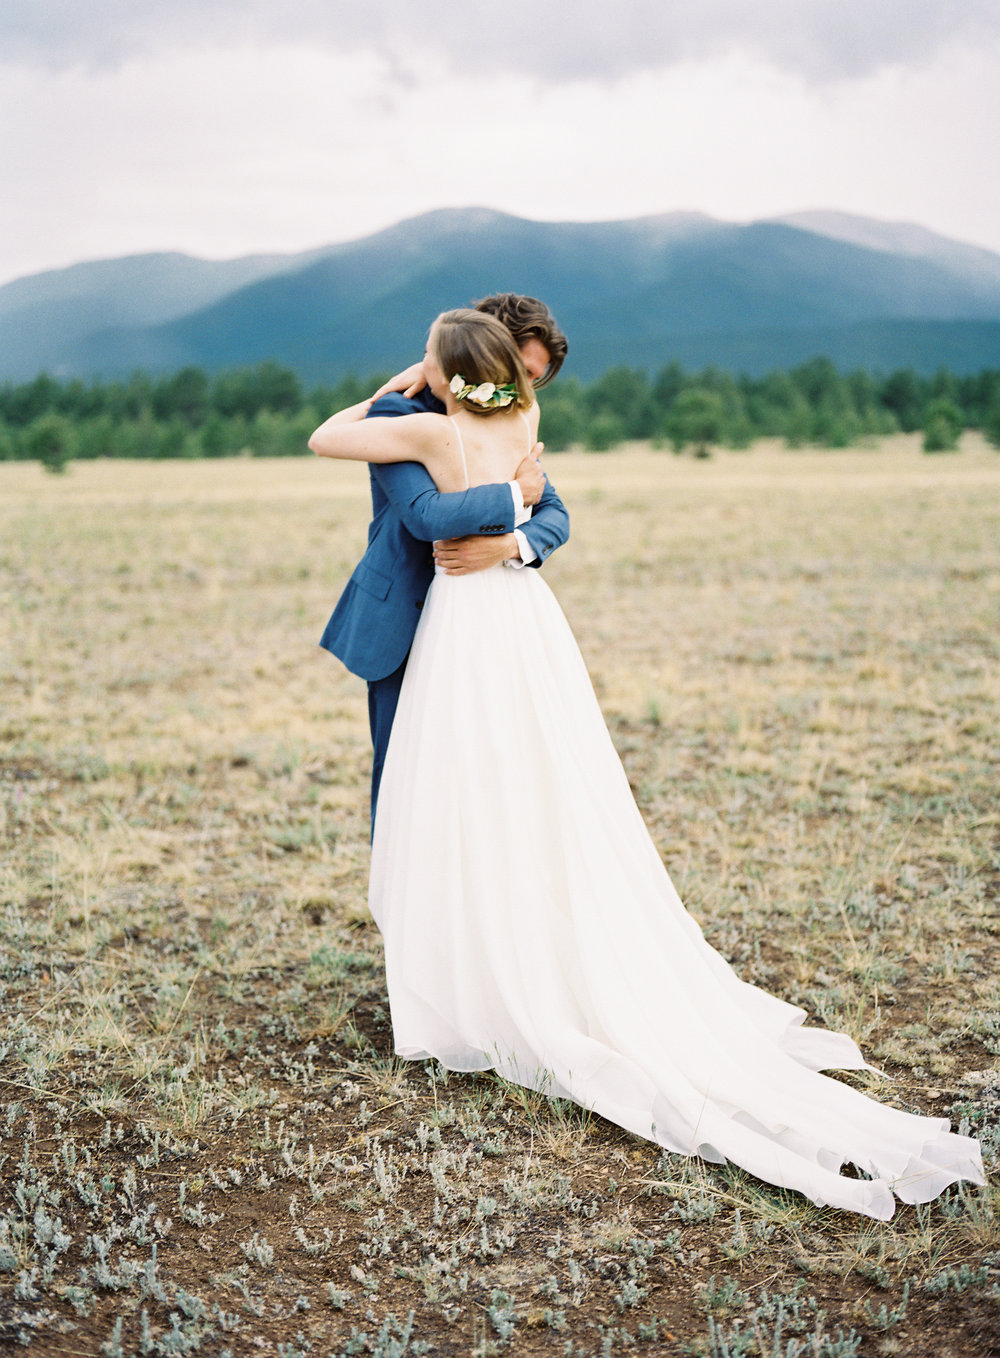 Jessica + Thomas - Buena Vista, Colorado